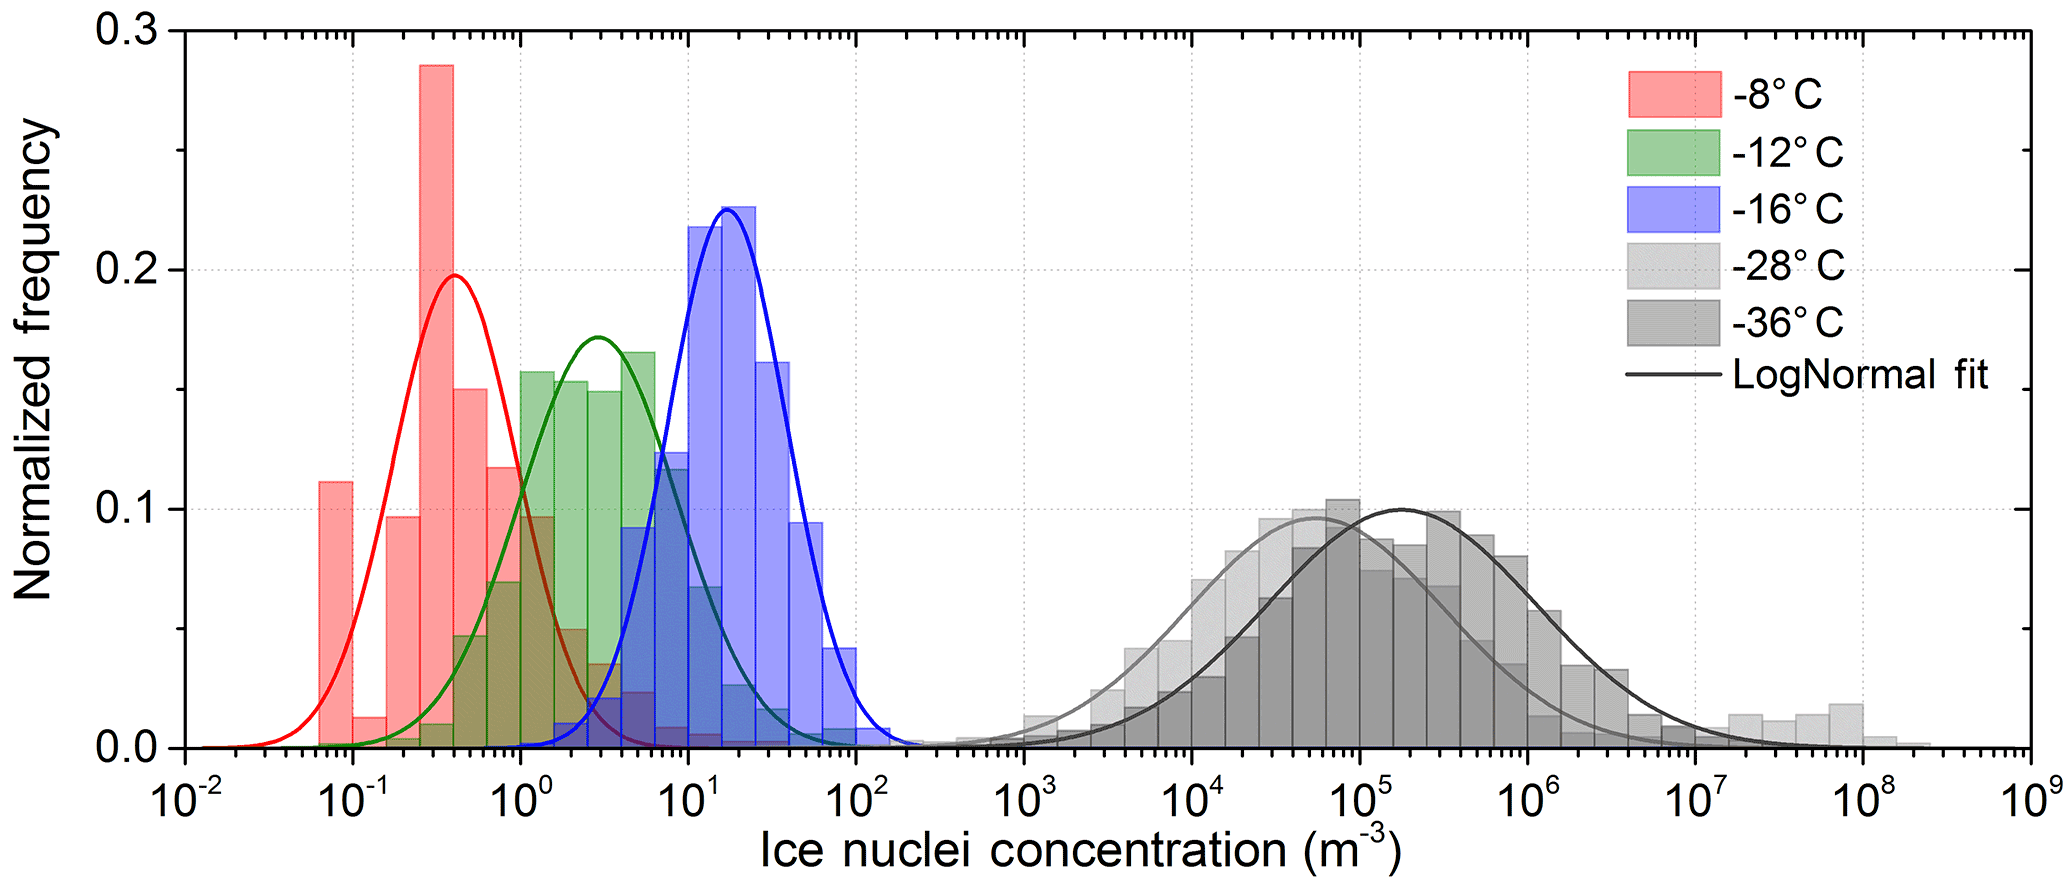 ACP - Concentration and variability of ice nuclei in the